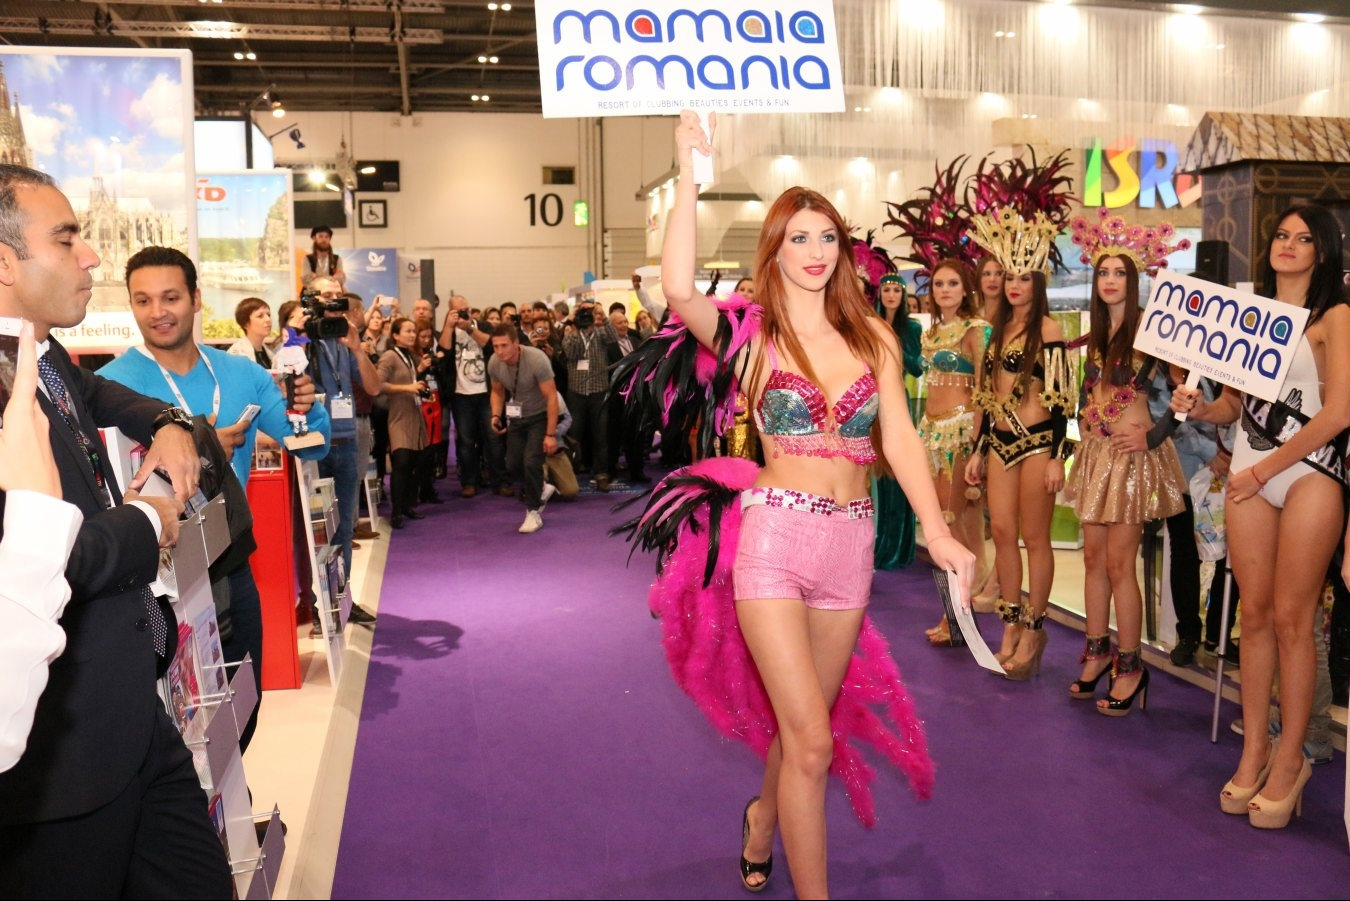 The carnival characters introduced Mamaia at the World Travel Market London 2014